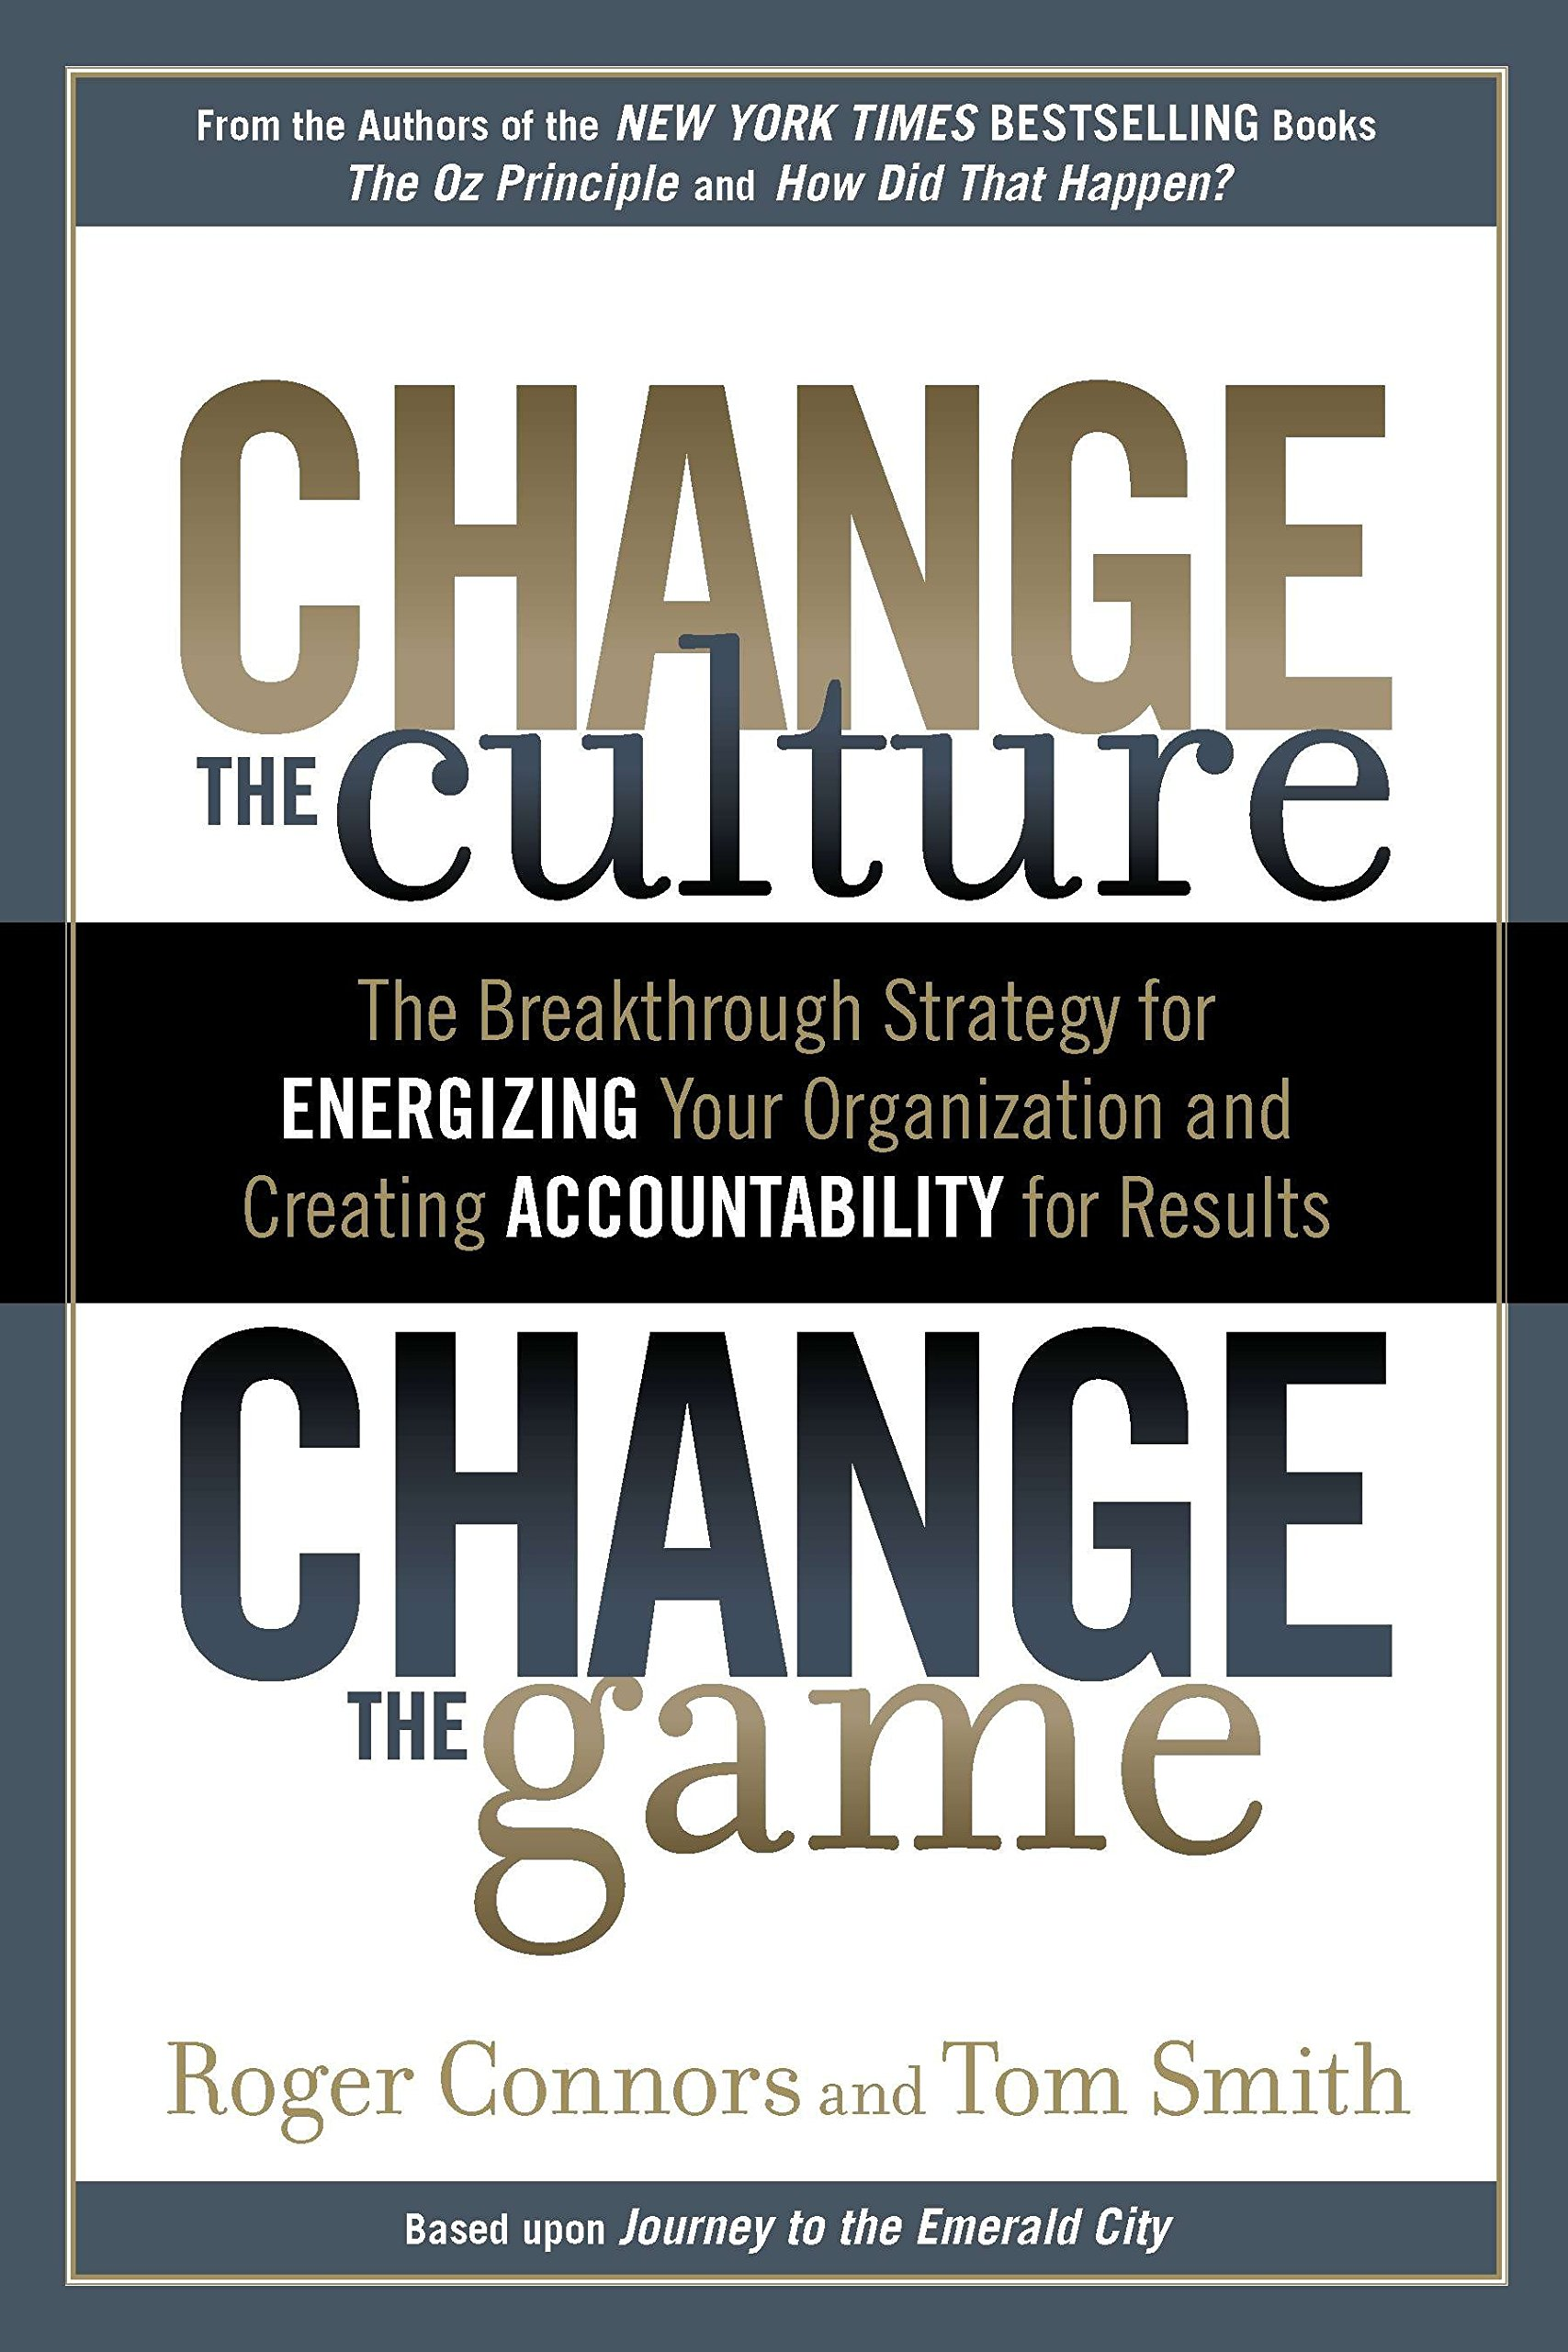 Change the Culture, Change the Game: The Breakthrough Strategy for Energizing Your Organization and Creating Accounta bility for Results ebook